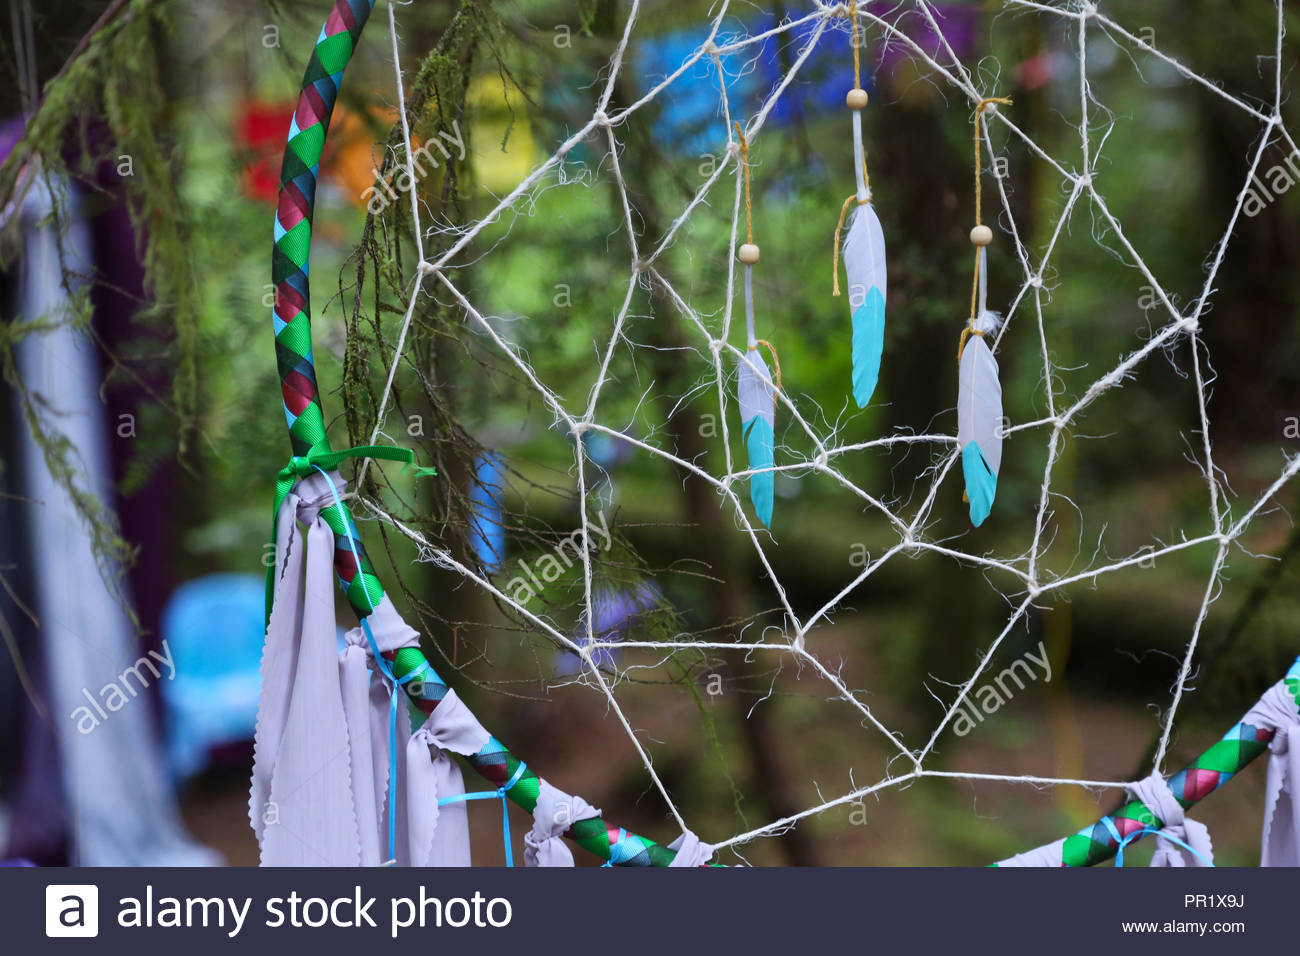 Dreamcatcher amid the trees. - Stock Image